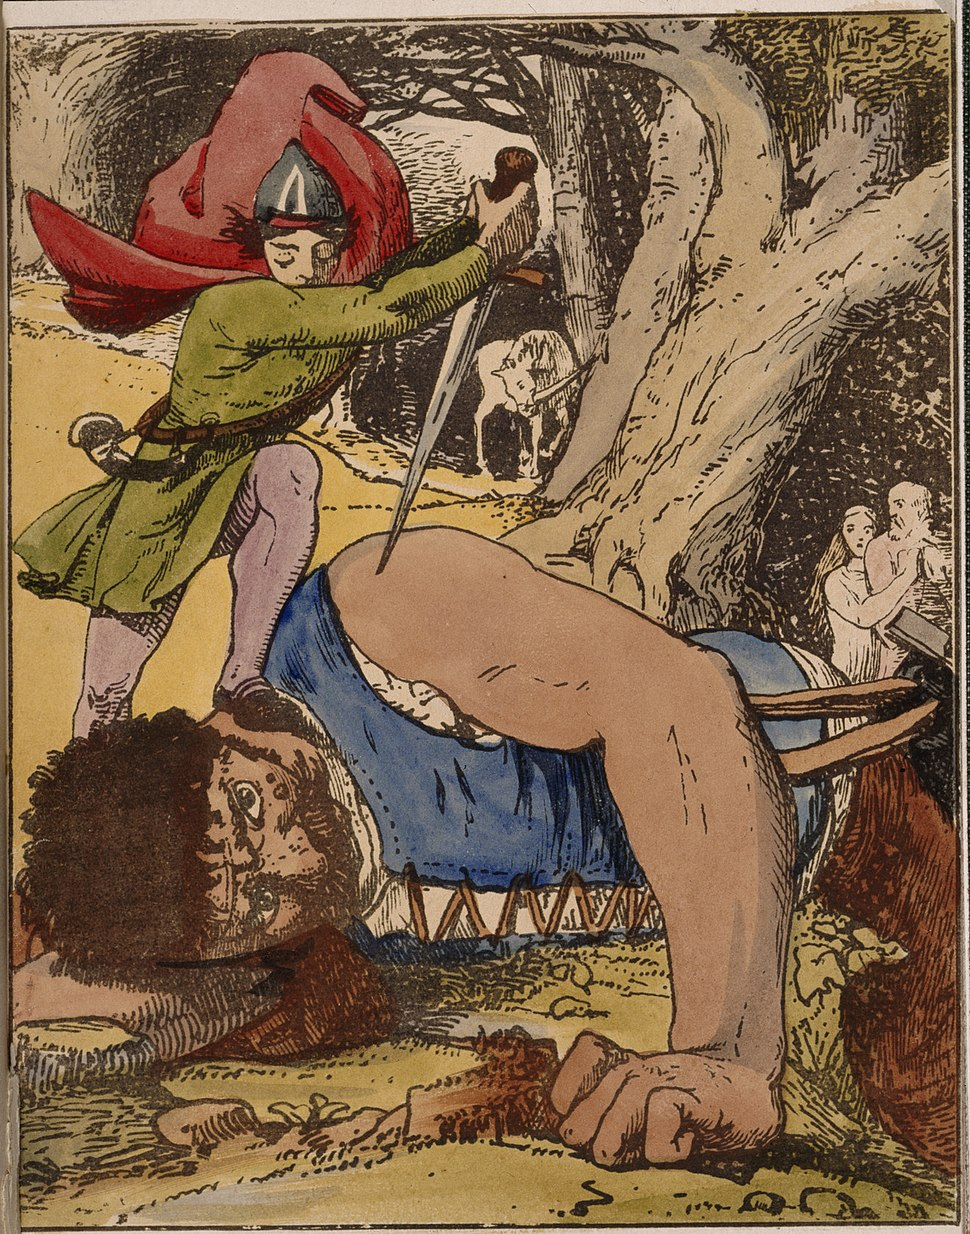 Jack killing the giant - The Chronicle of the Valiant Feats of Jack the Giant Killer (1845), facing 20 - BL